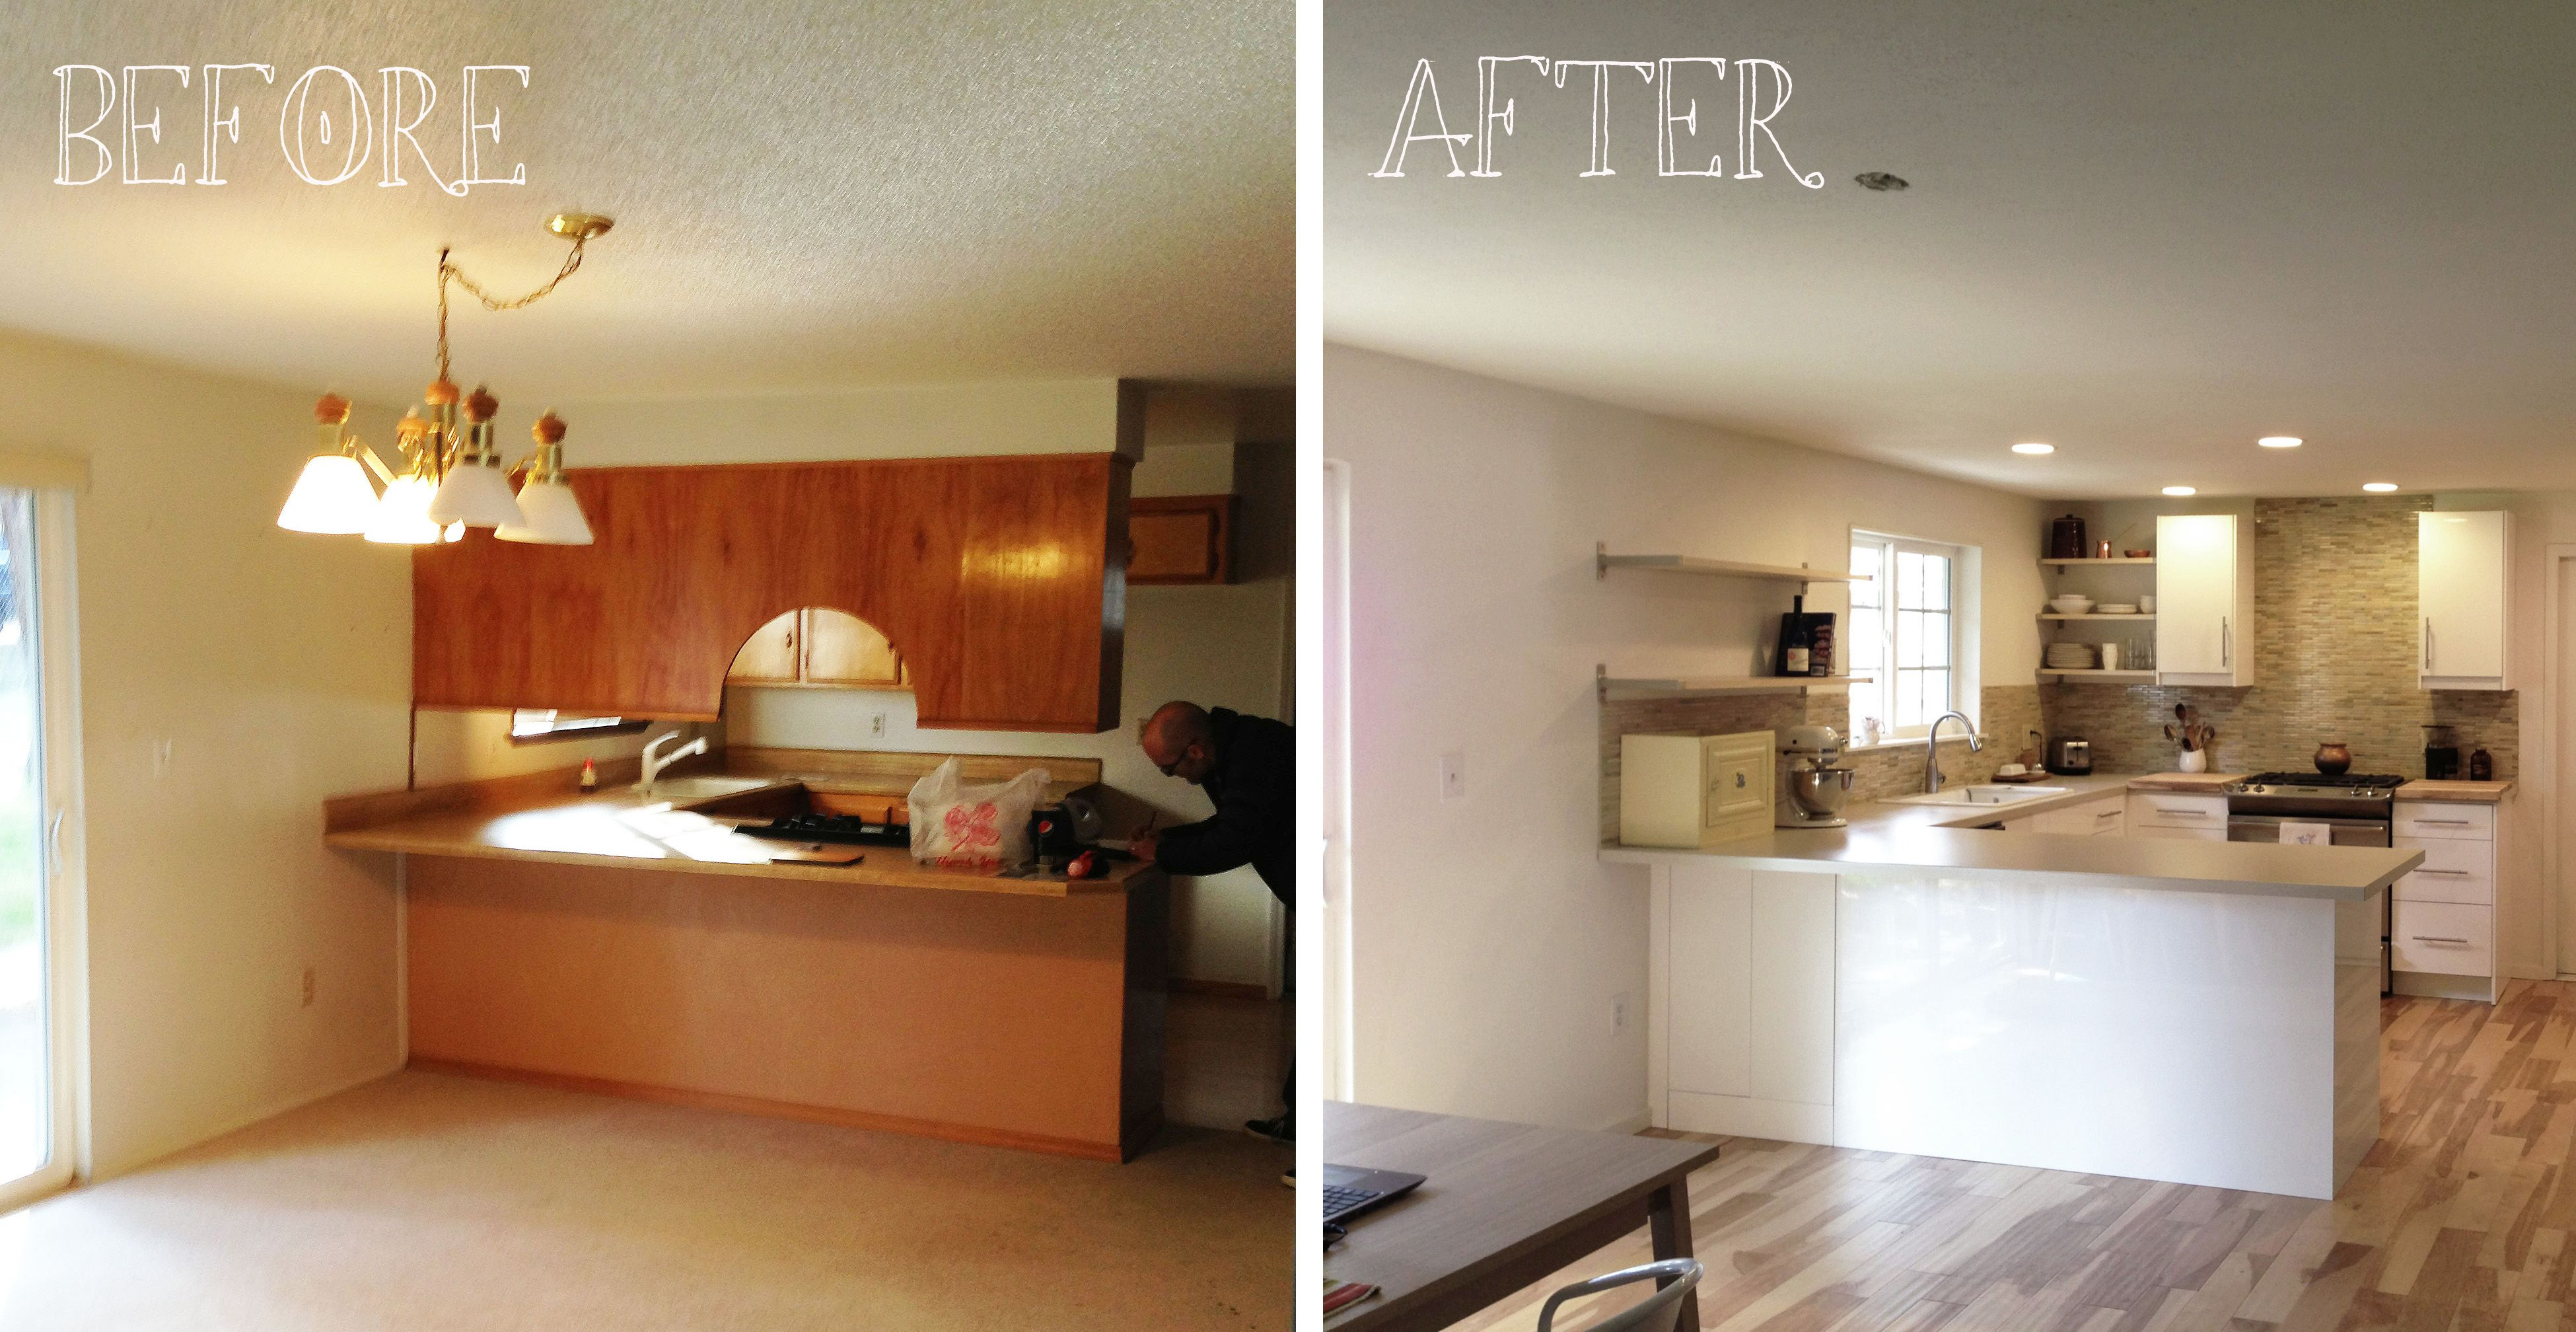 White Kitchen Remodel Before And After travel trailer remodel before and after remodel before after